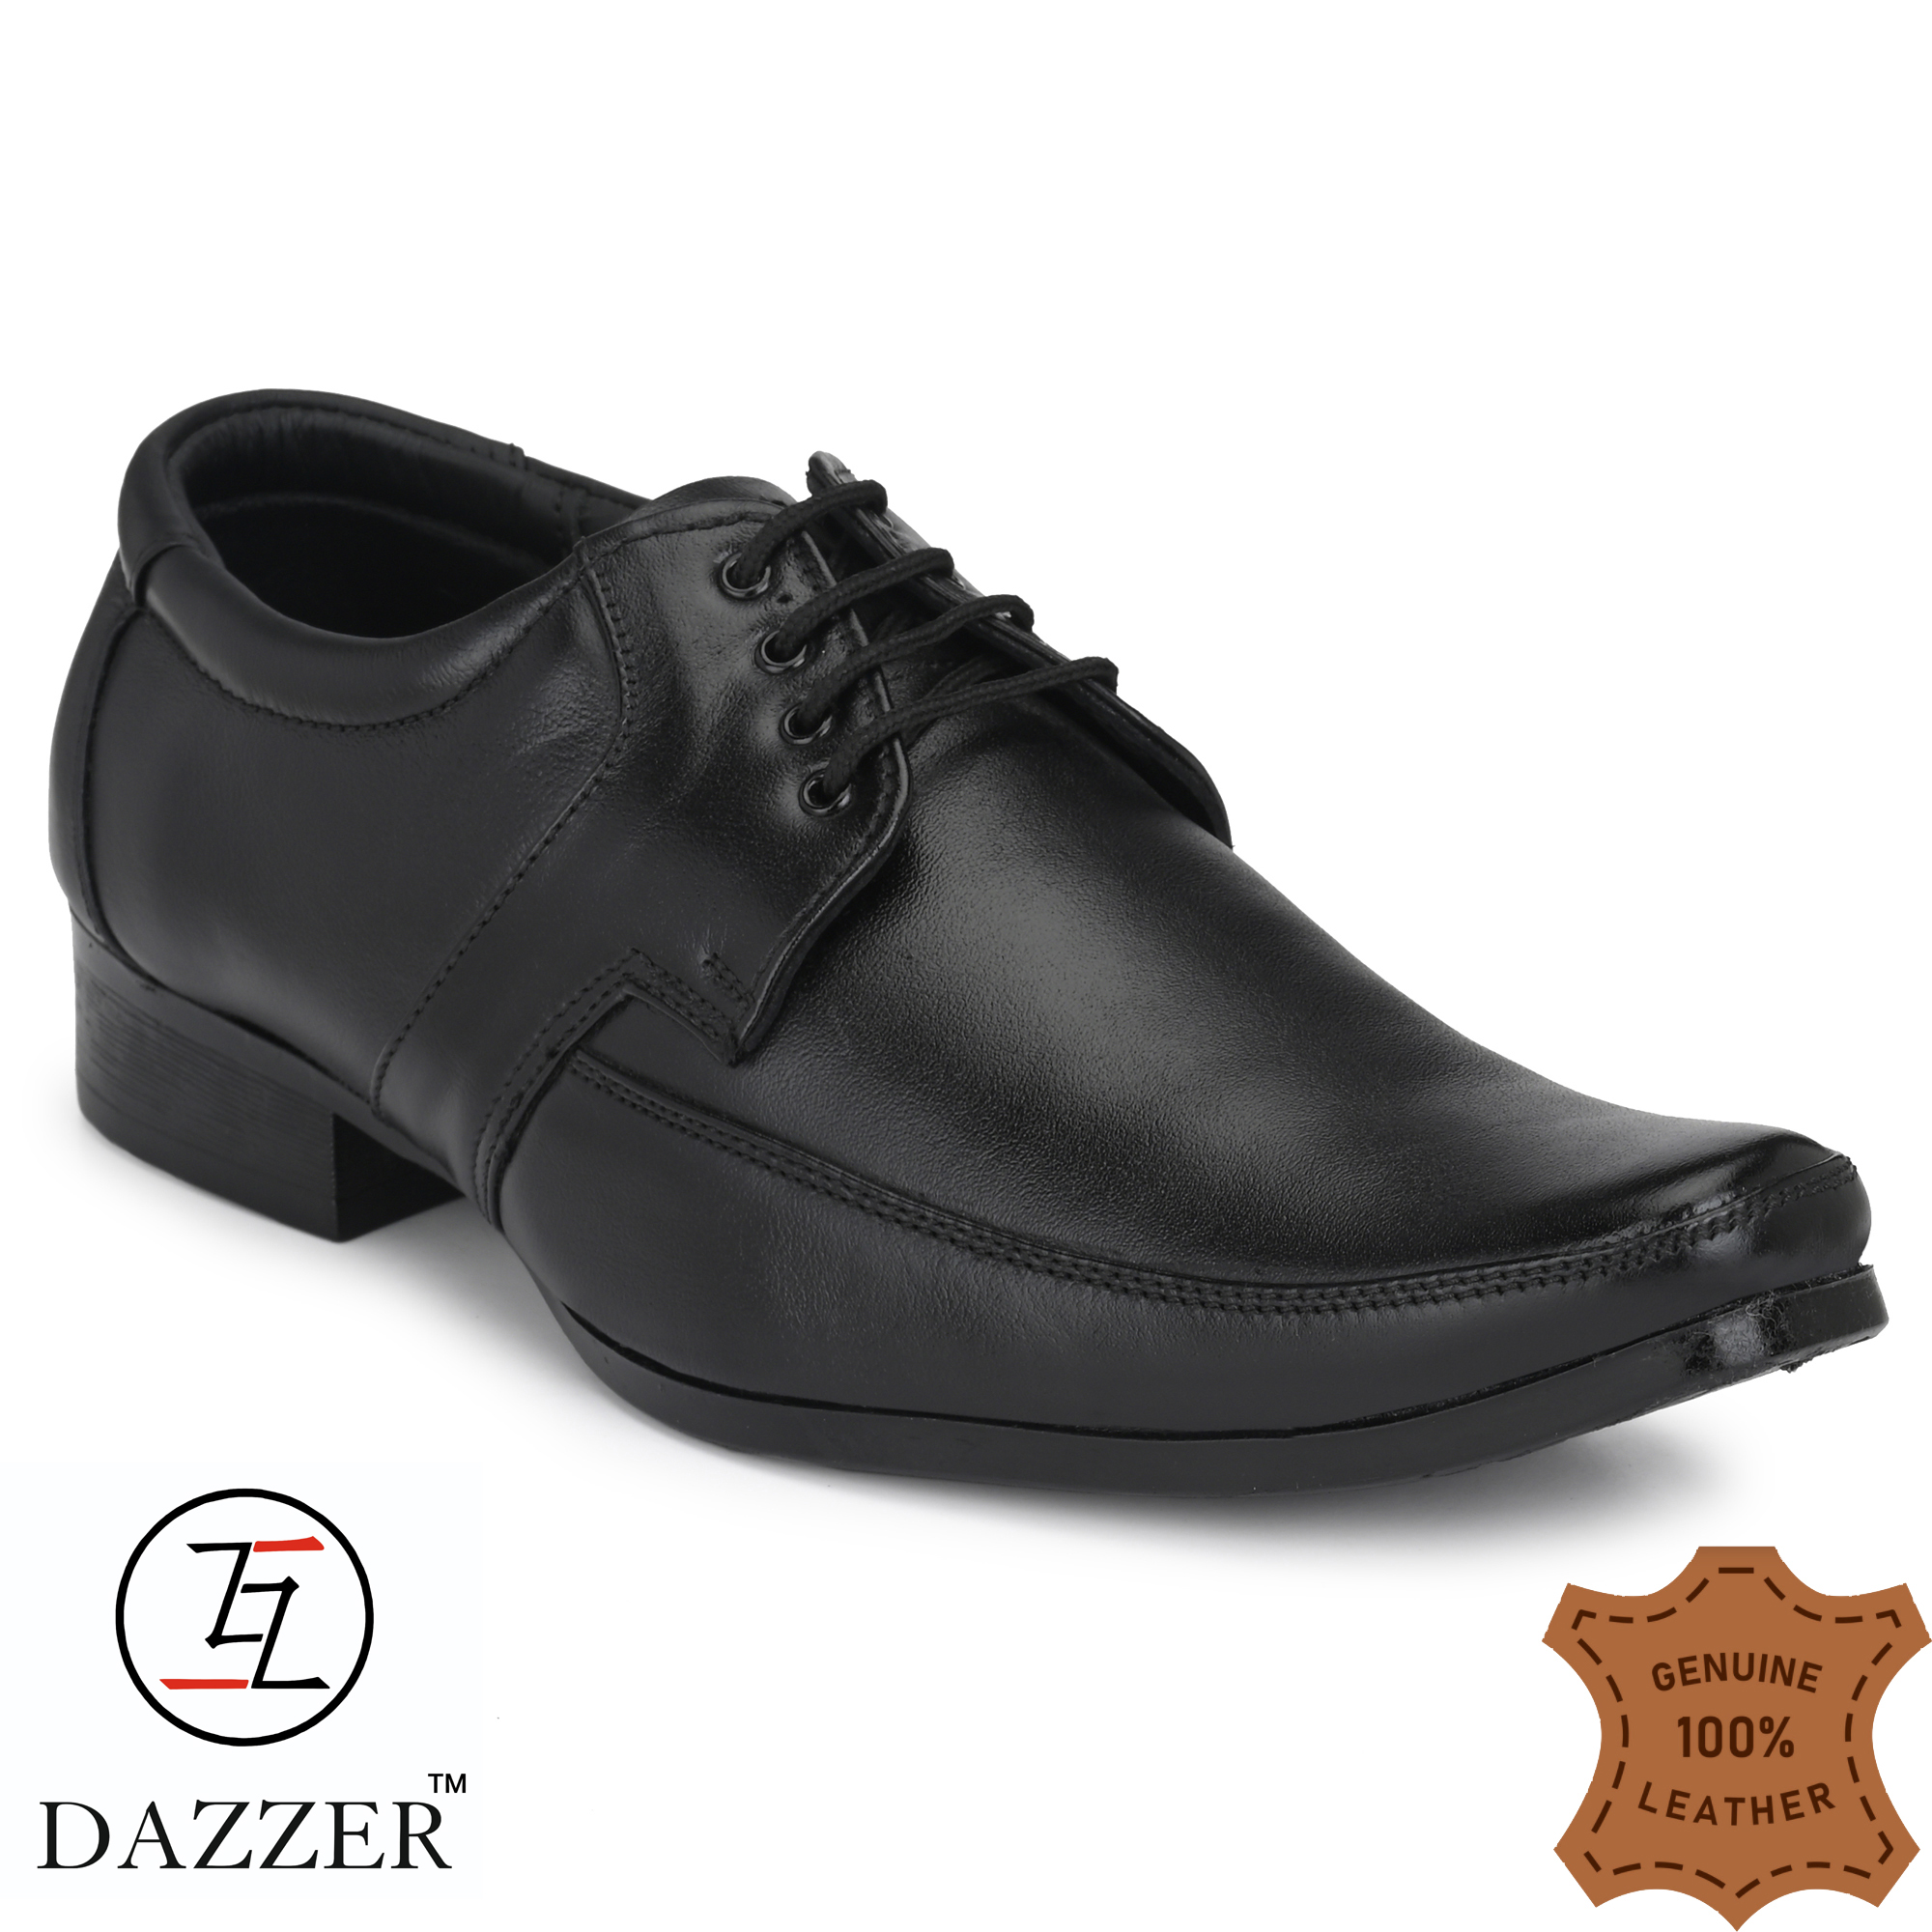 Dazzer 574 Lace Up Leather Formal Shoes For Men 574Black (Black, 6-10, 8 PAIR)